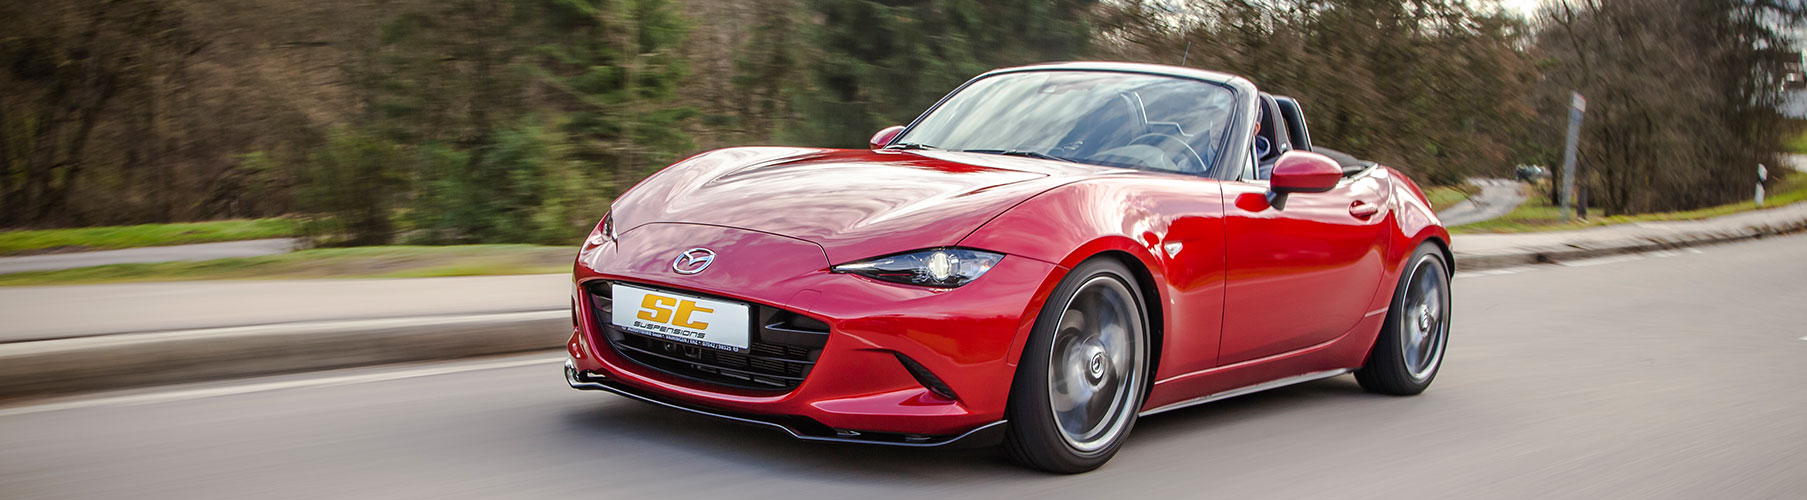 Upgrade your Joyride: Mazda MX-5 (ND) lowered with a coilover kit from ST suspensions